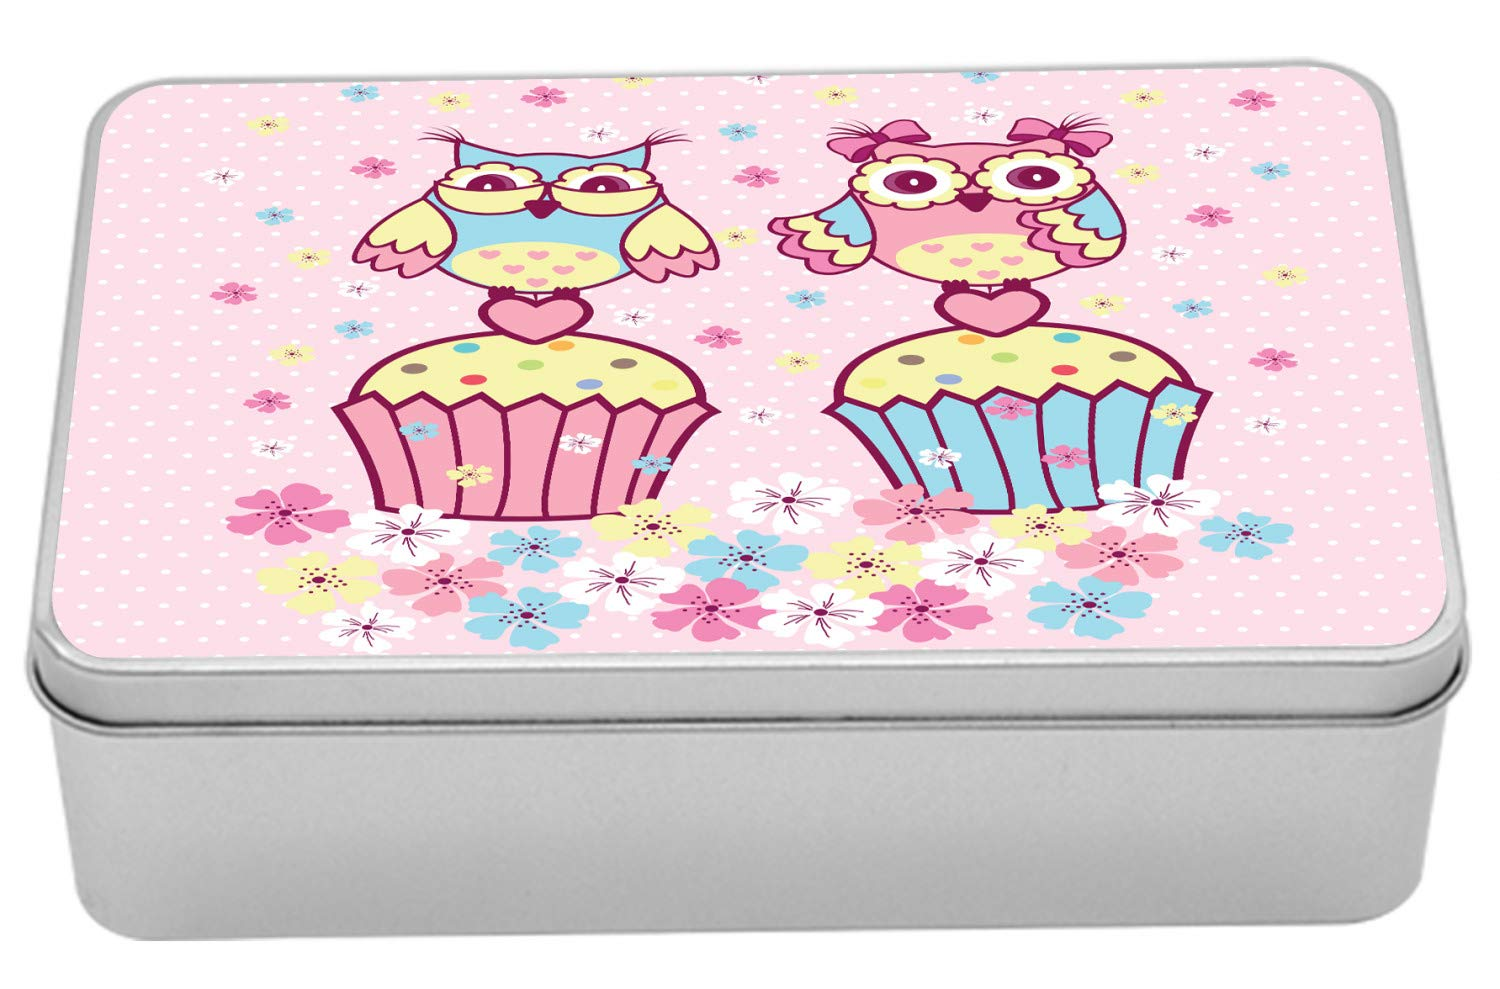 Ambesonne Owls Metal Box, 2 Owl Couples on Cupcakes Springtime Happiness Romantic Children Art, Multi-Purpose Rectangular Tin Box Container with Lid, 7.2'' X 4.7'' X 2.2'', Pale Pink Sky Blue Yellow by Ambesonne